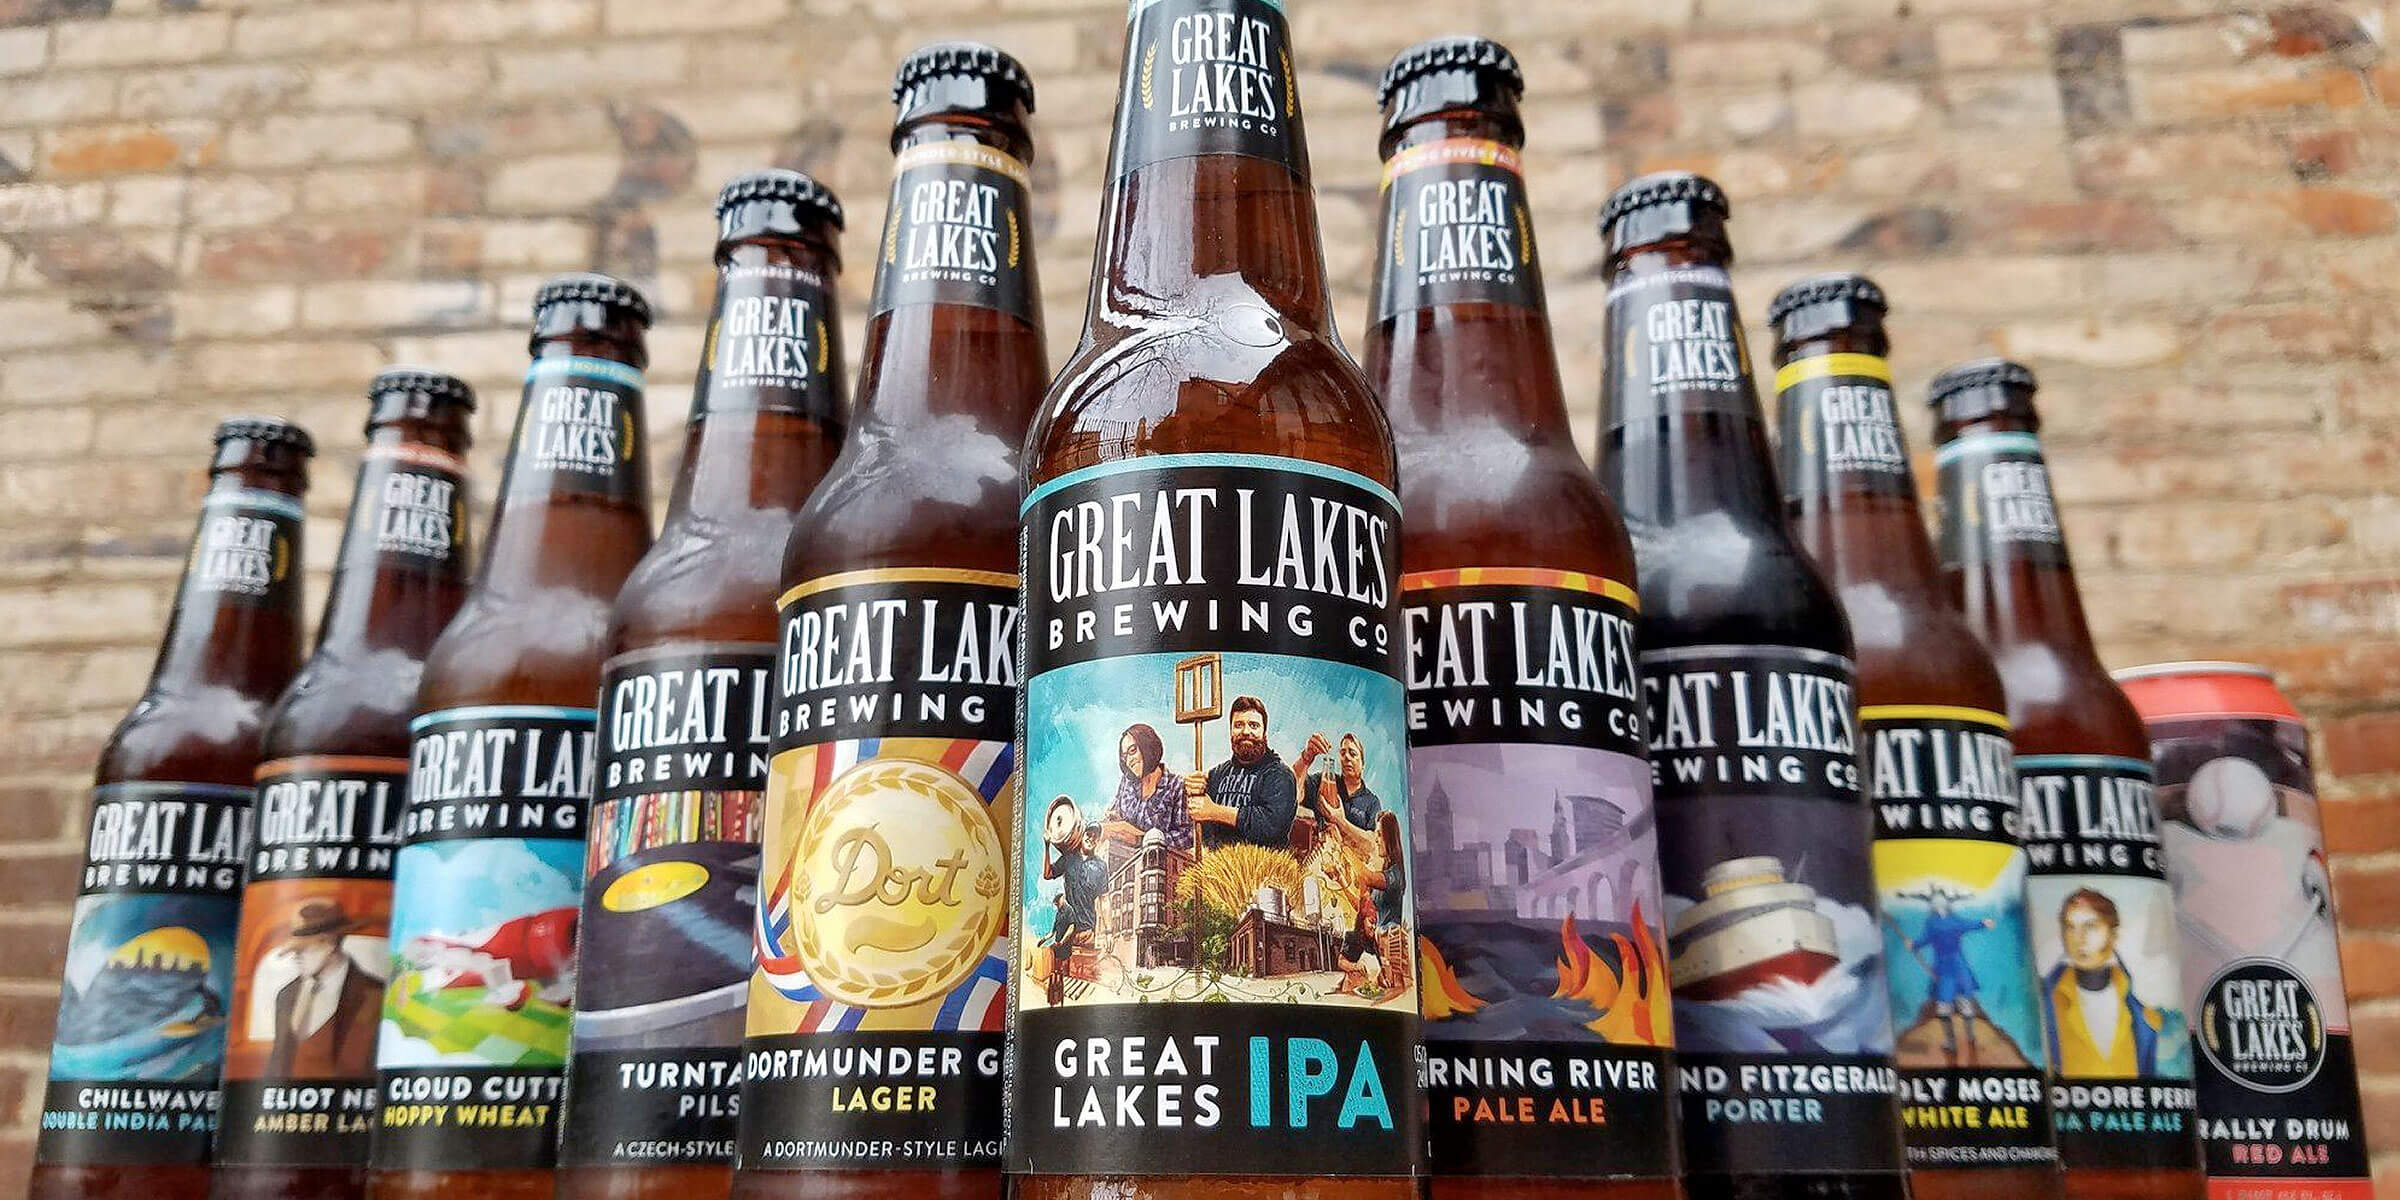 Lineup of bottled beers offered by Great Lakes Brewing Co.